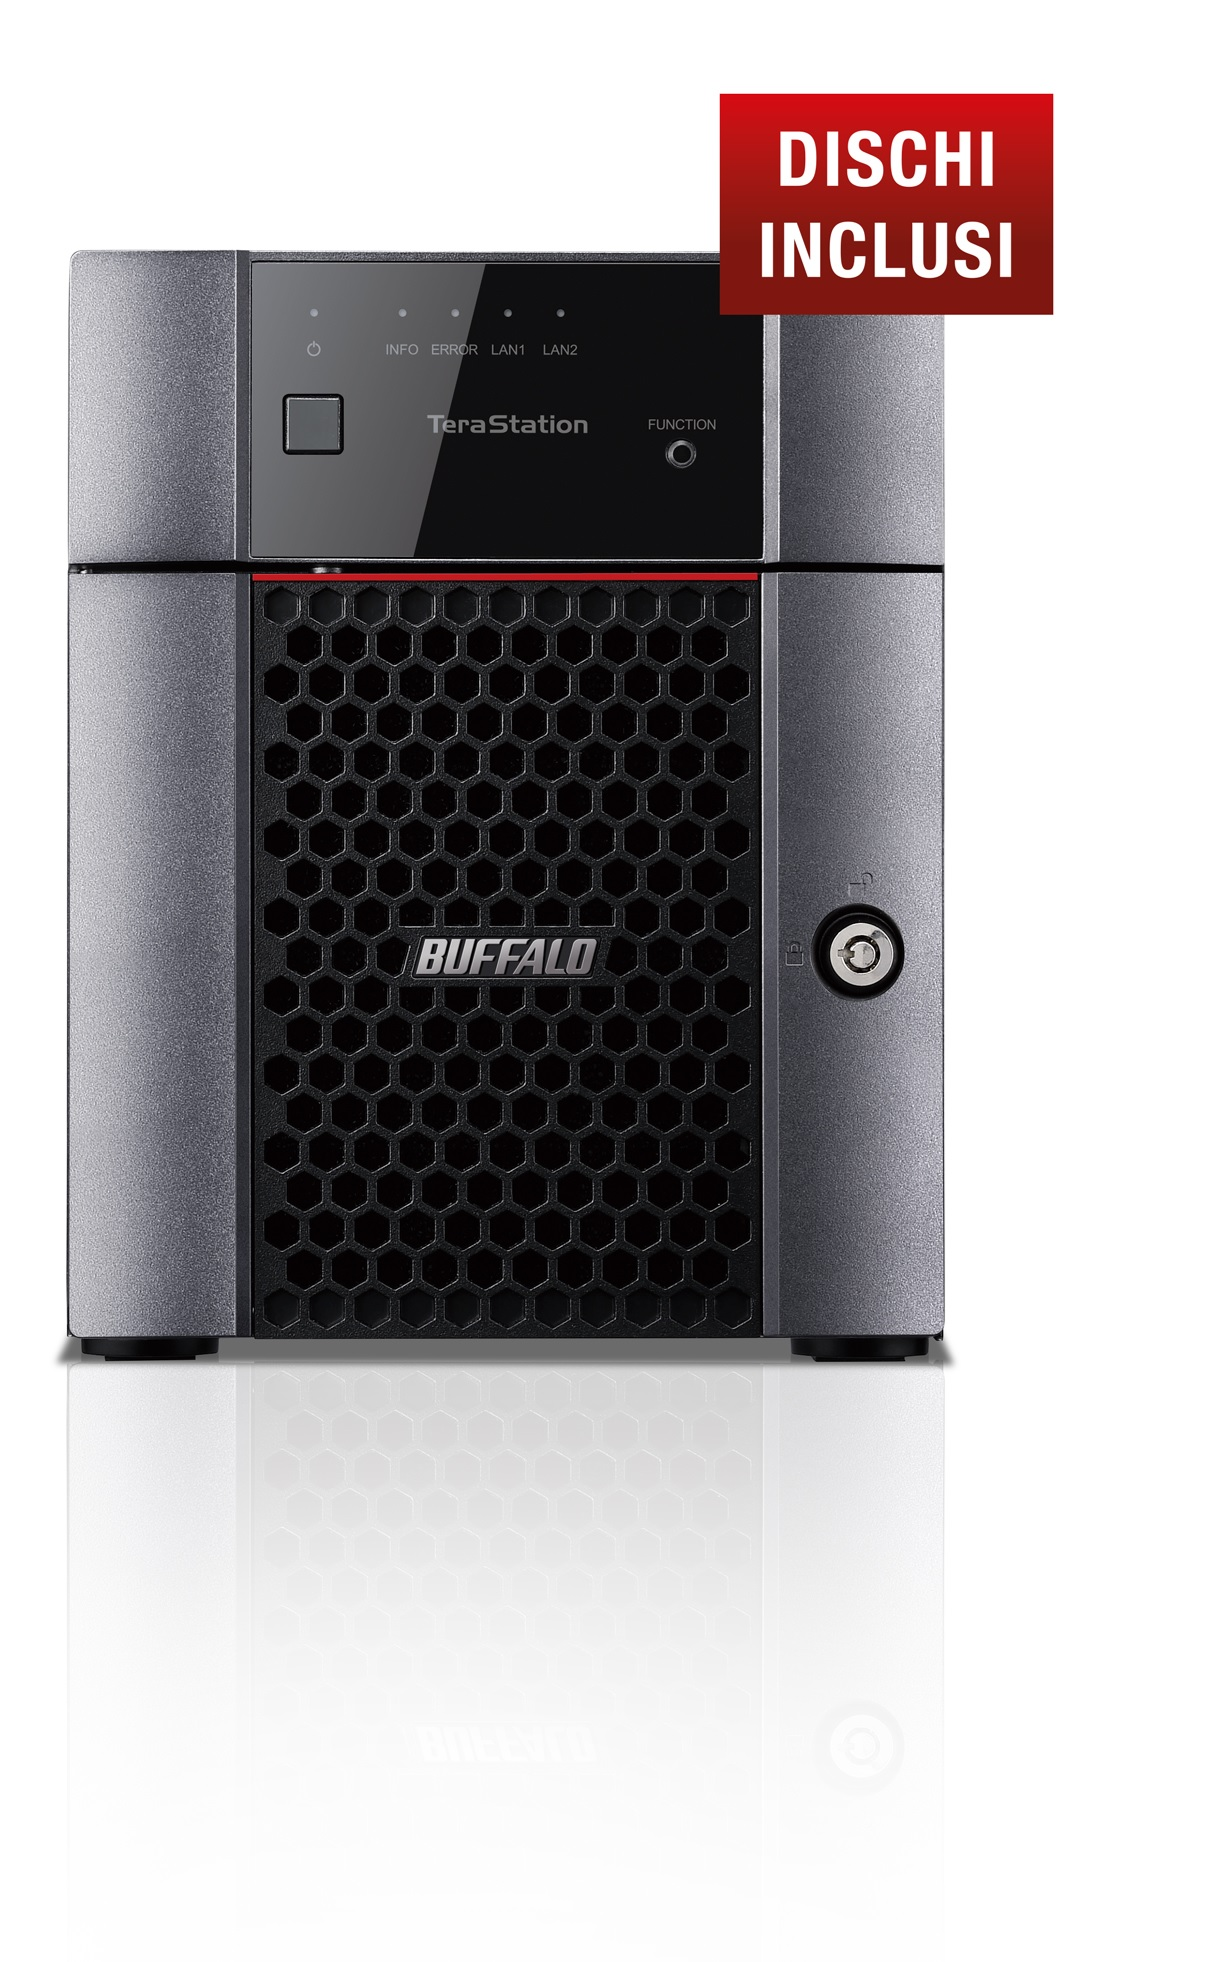 BUFFALO NAS TERASTATION 3410 DESKTOP 4X1TB HDD SATA GIGABIT ETHERNET 3 ANNI GARANZIA ADVANCED REPLACEMENT DEI DISCHI